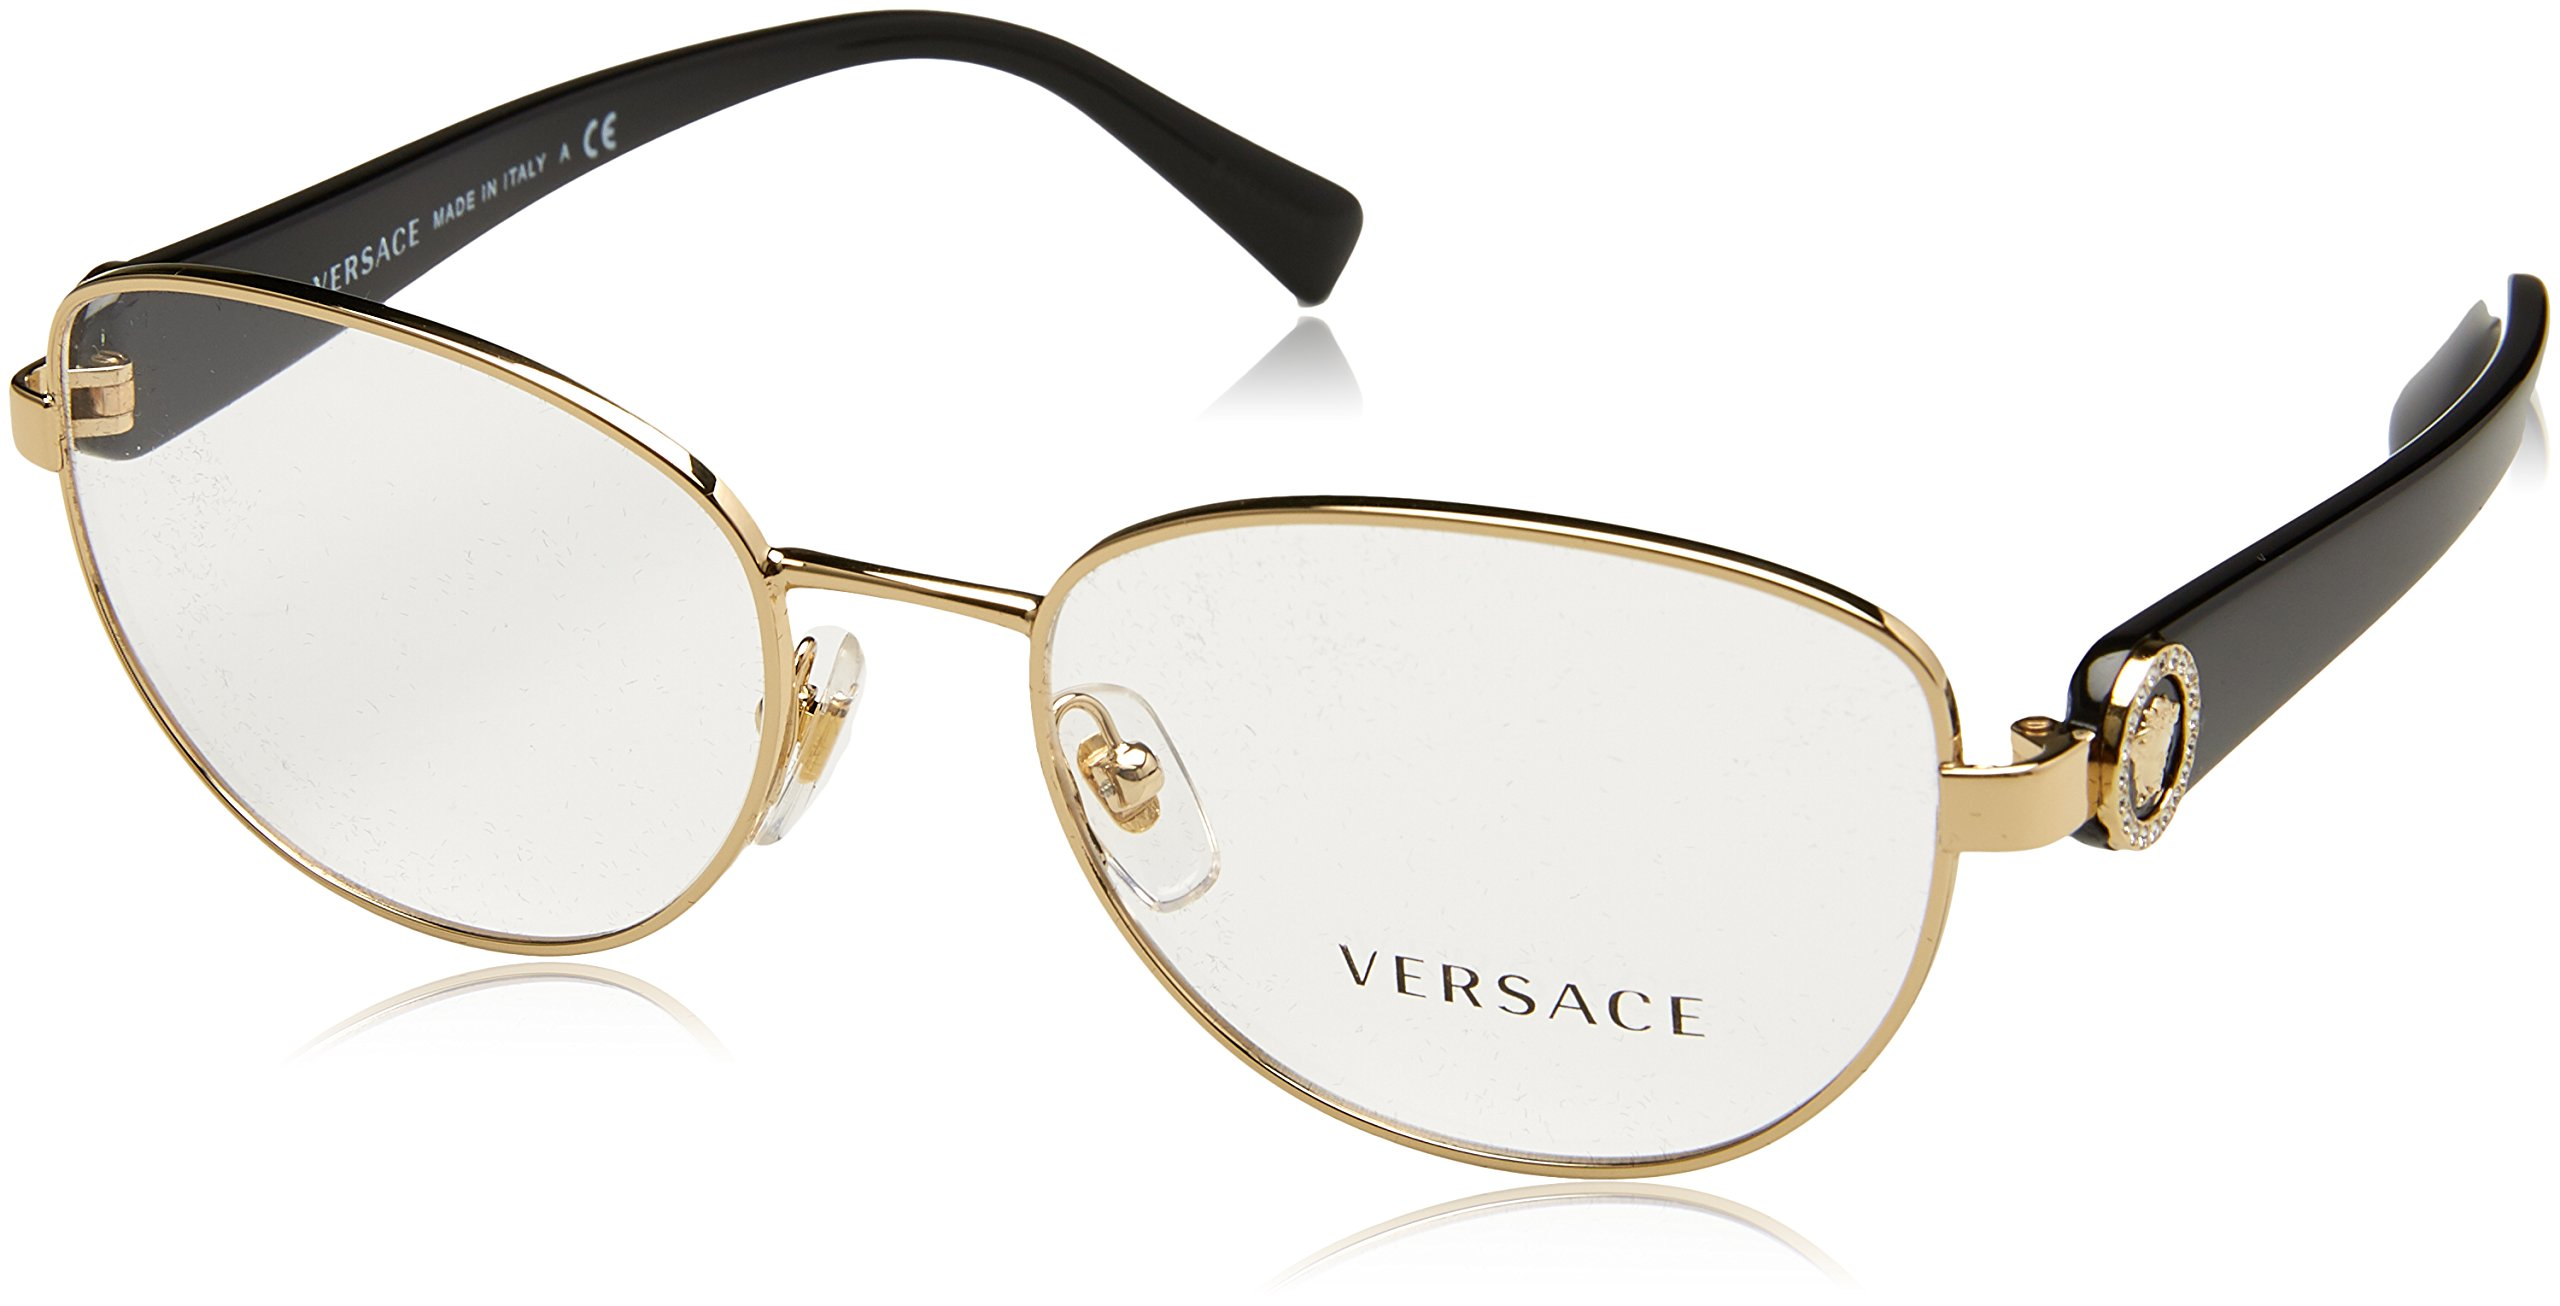 Versace VE1246B Eyeglass Frames 1332-52 - Pale Gold VE1246B-1332-52